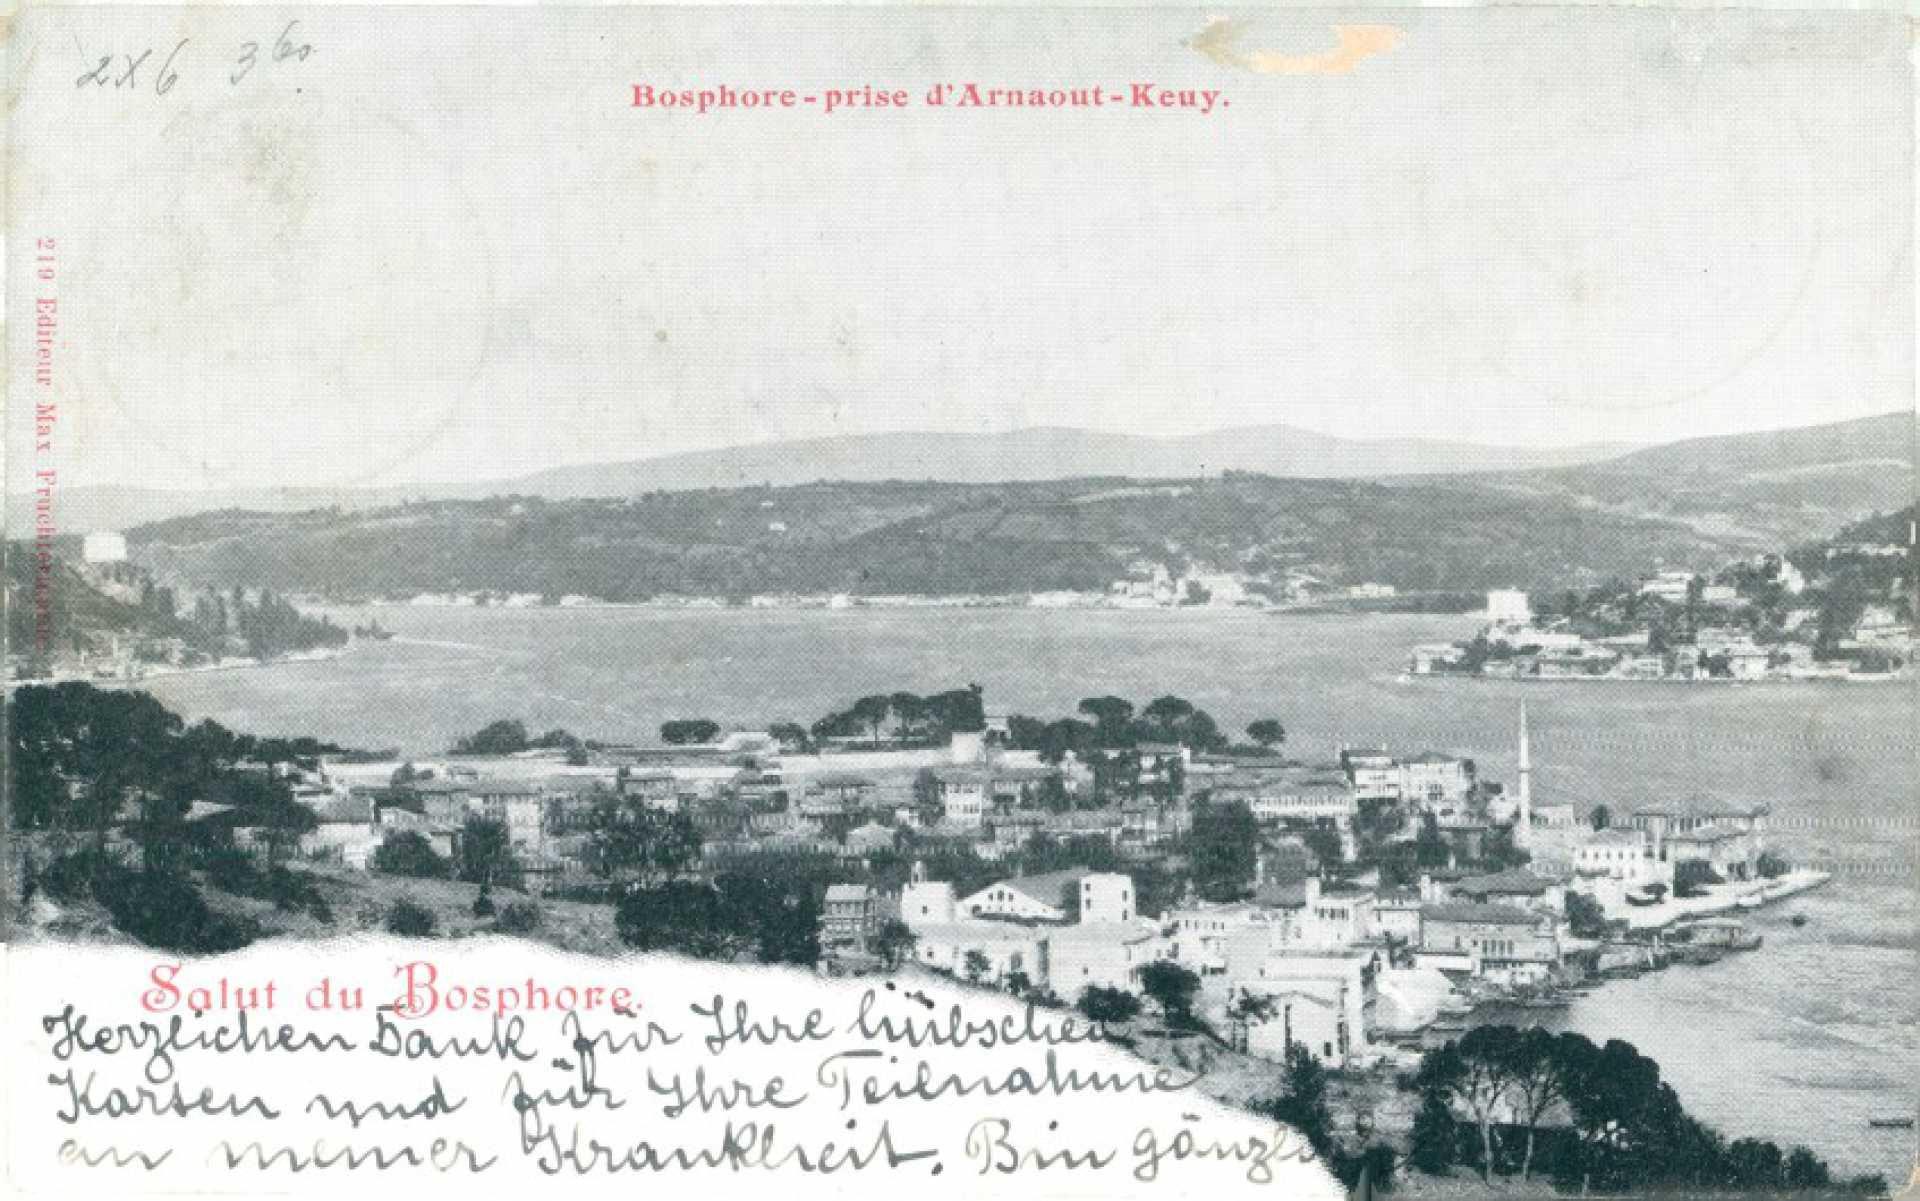 Bosphore- prise d'Arnaout-Keuy